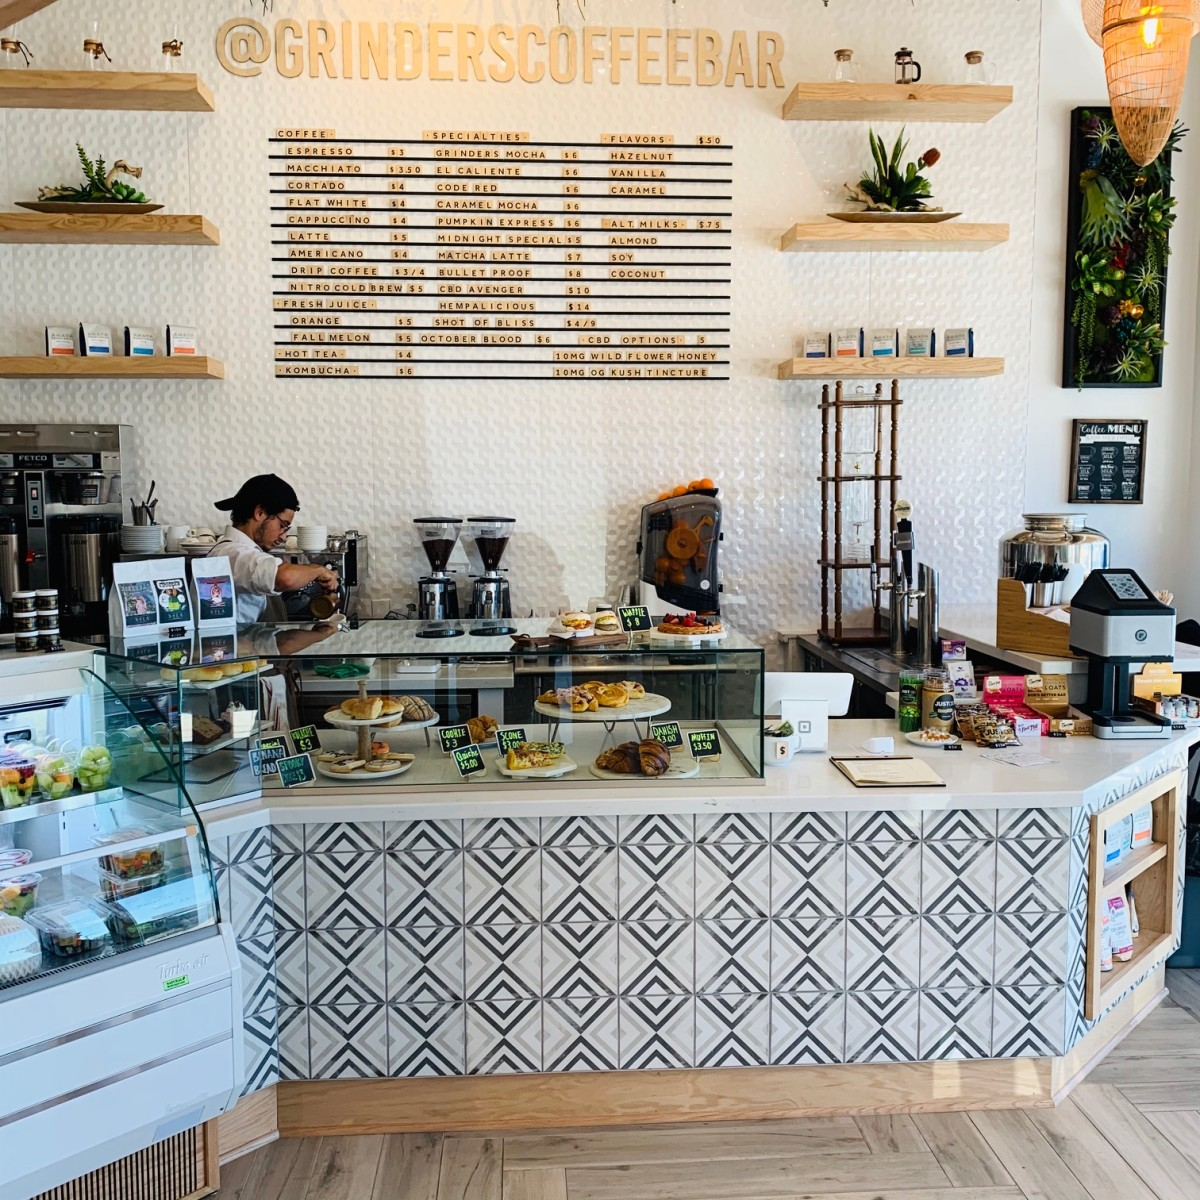 Grinder's Coffee Bar interior